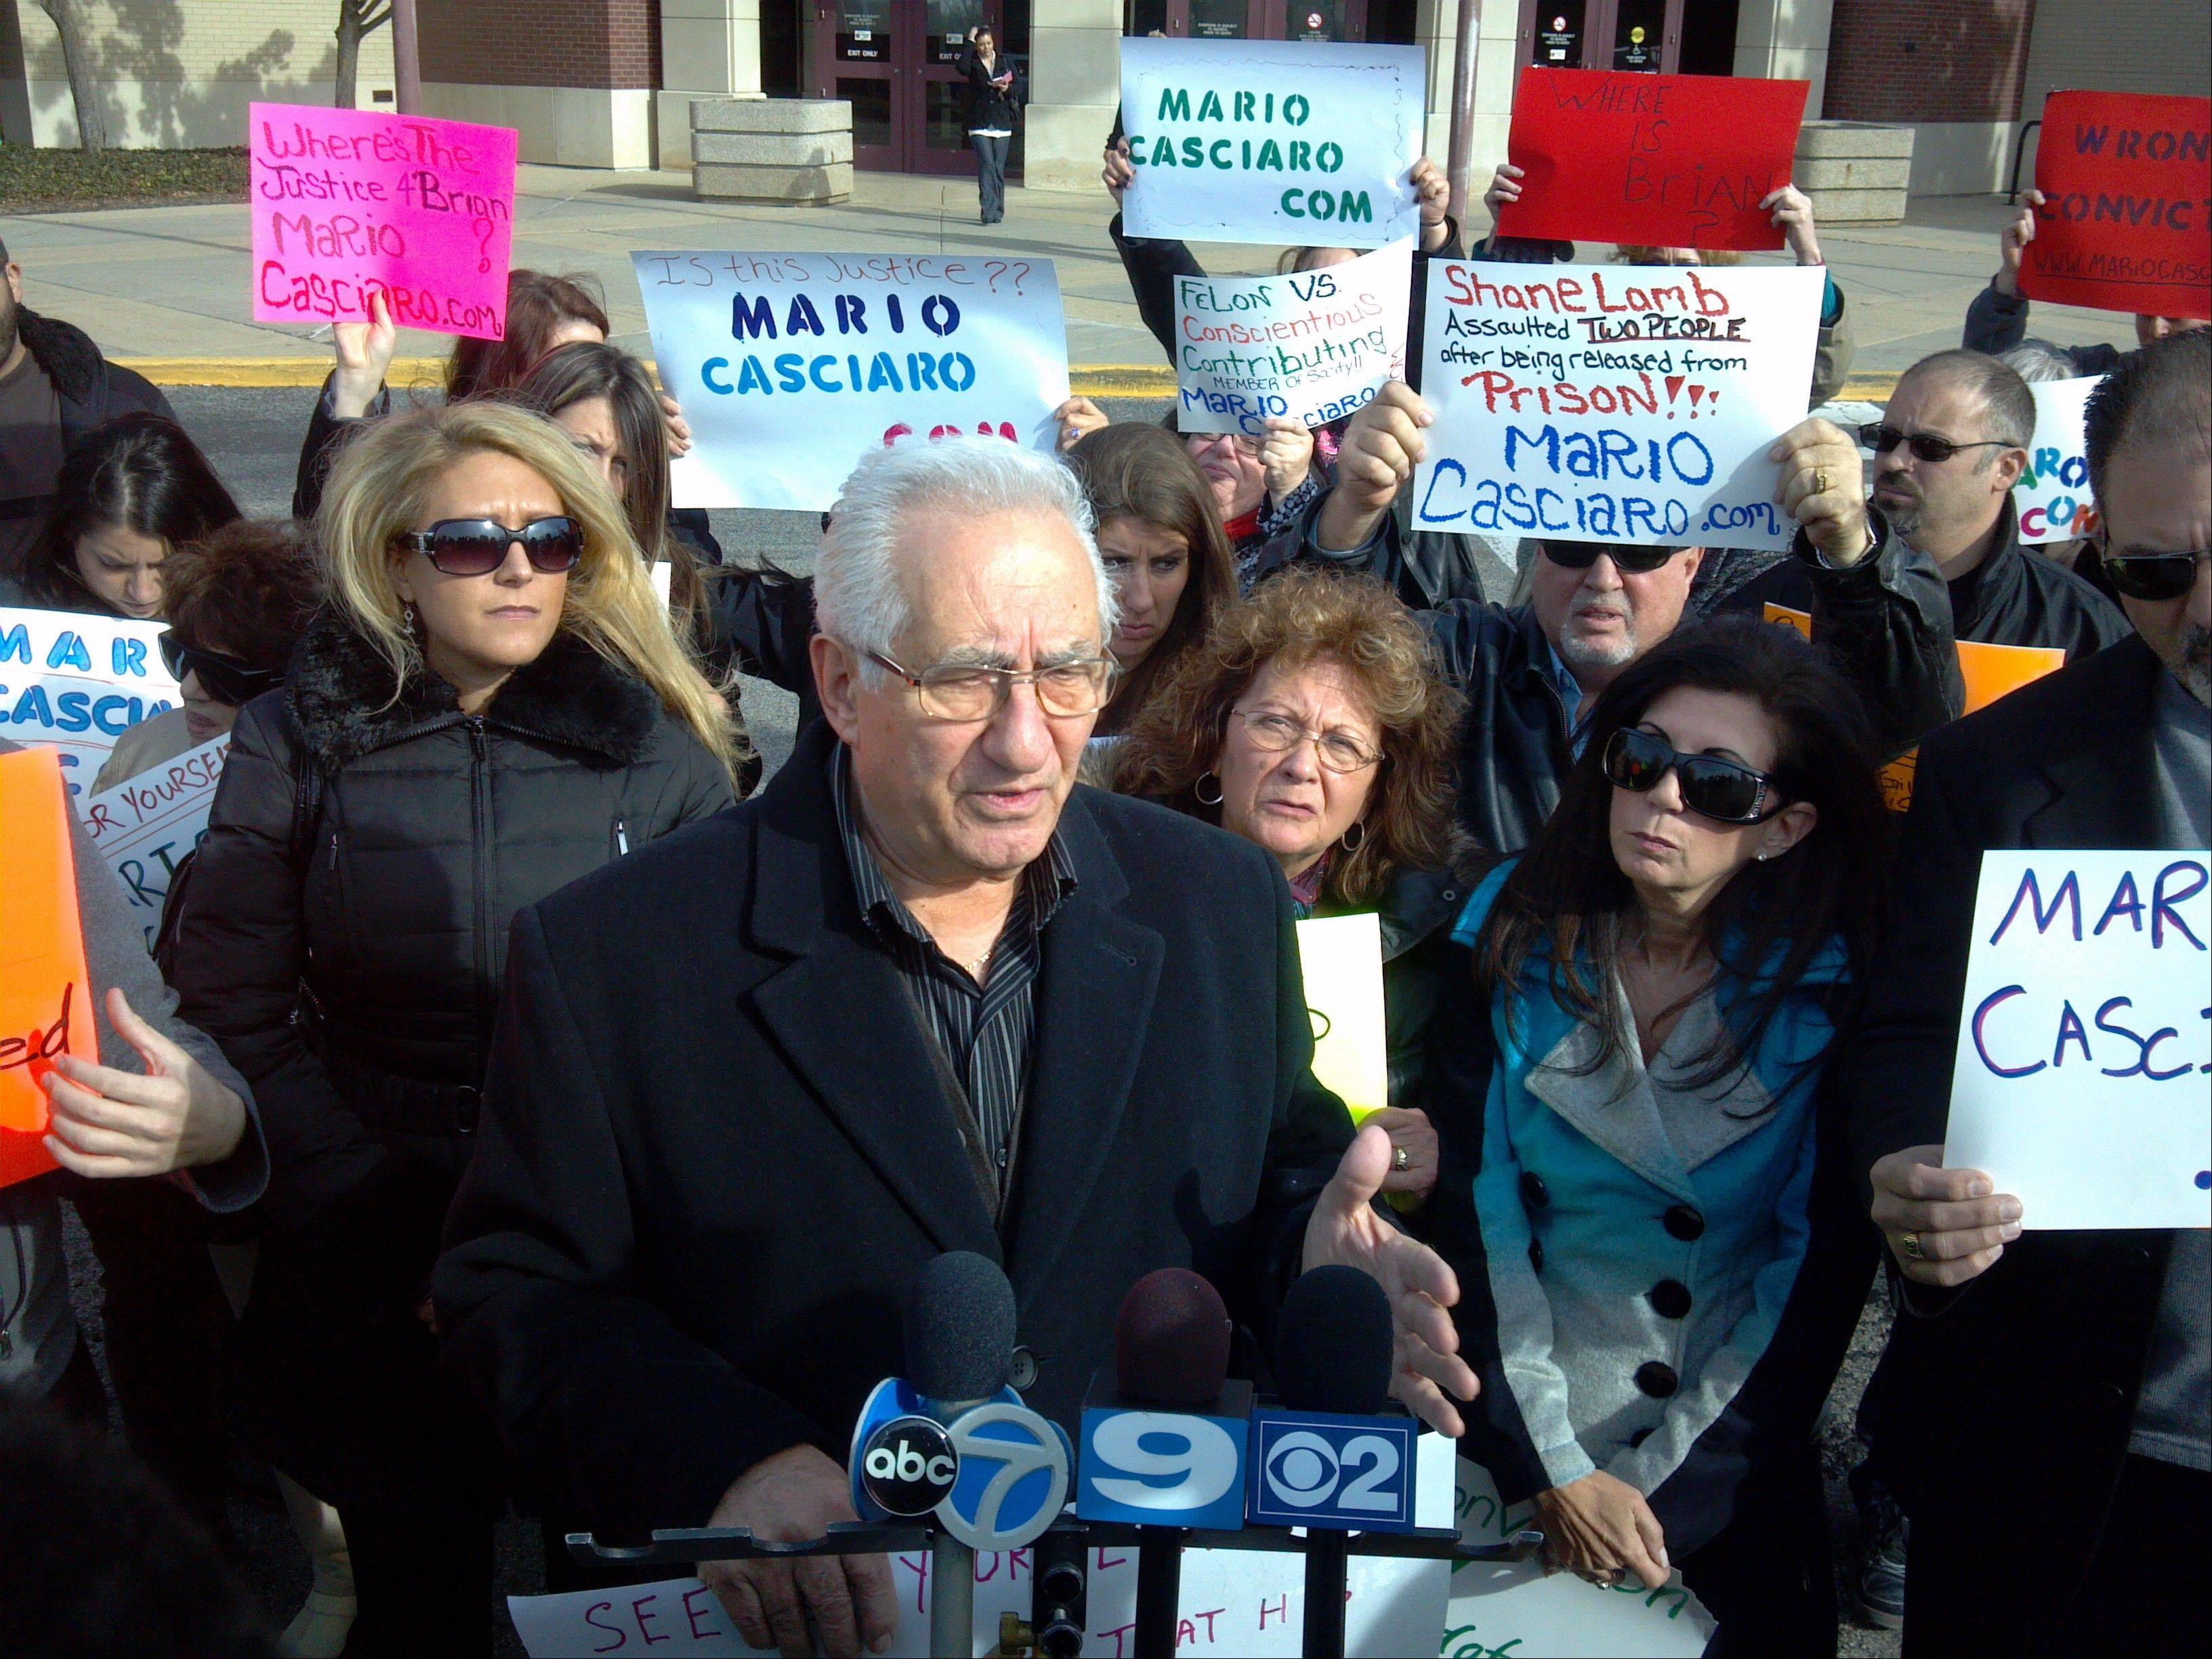 Surrounded by family members and supporters outside the McHenry County courthouse, Jerry Casciaro announces a $25,000 reward for information about the location of Brian Carrick's body. Casciaro's son, Mario, was sentenced to 26 years in prison Thursday after being convicted of Carrick's 2002 murder earlier this year.